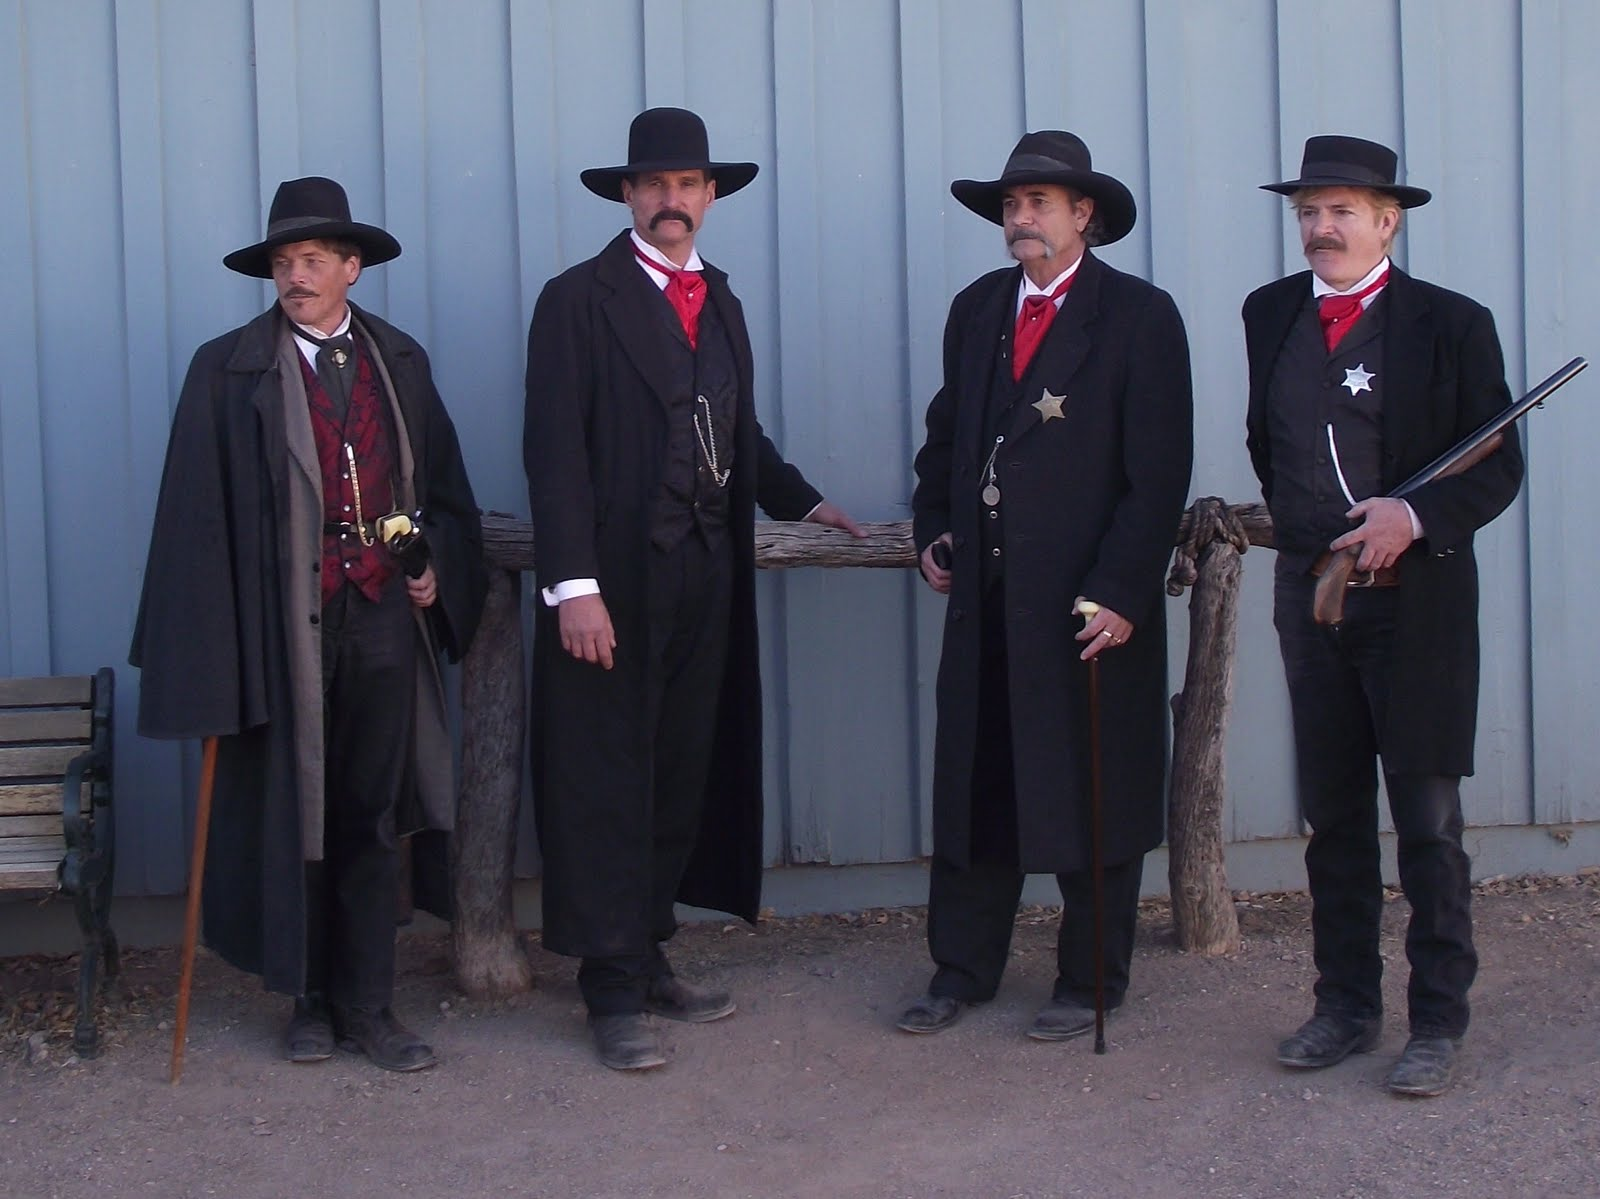 Gunfight at OK Corral Arizona